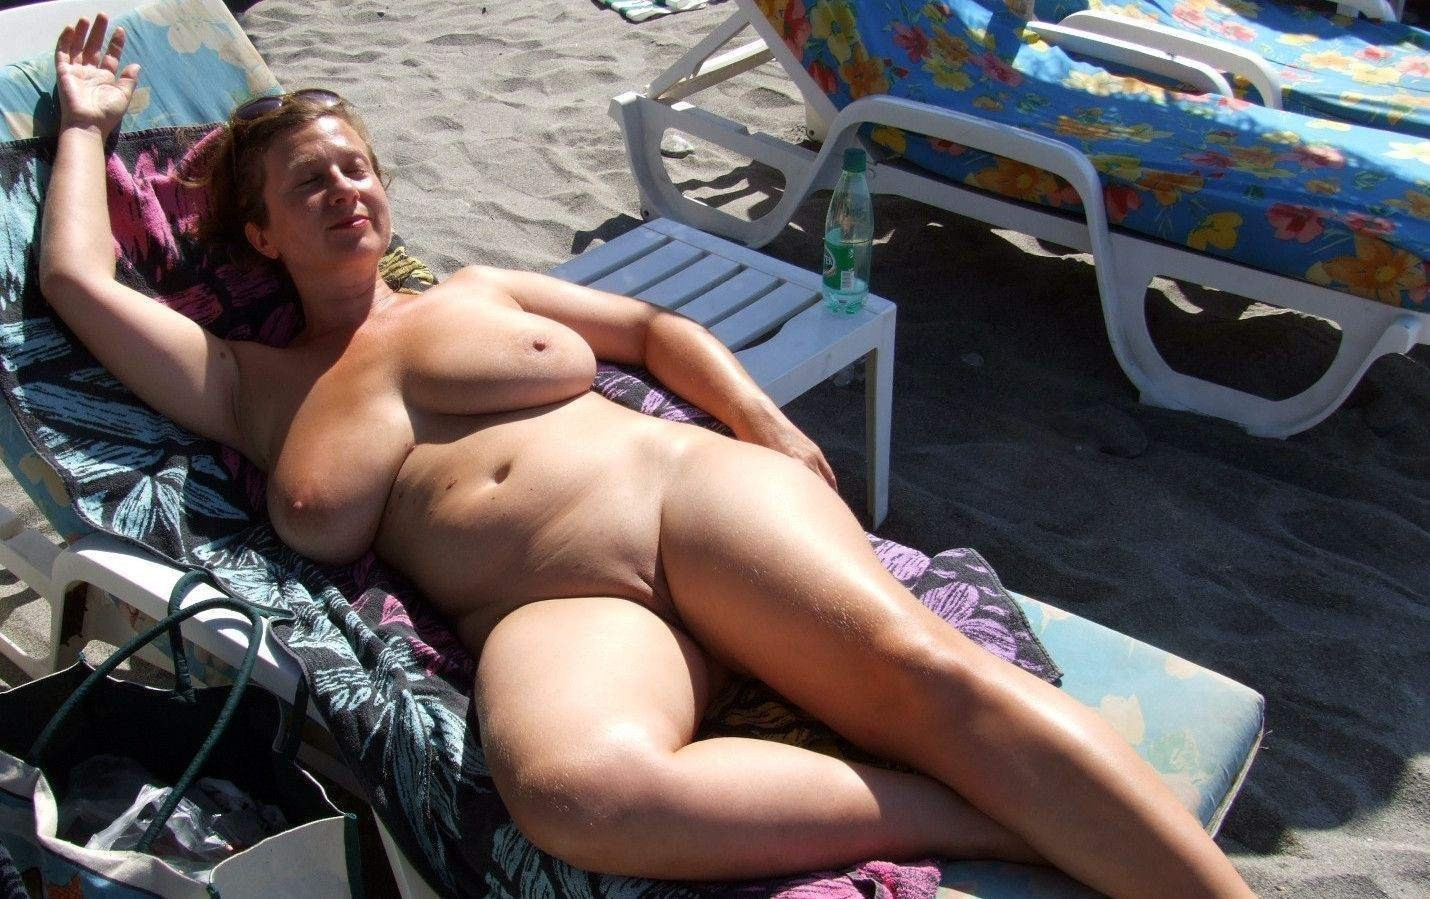 Curvy busty wife sun-bathing nude on the beach